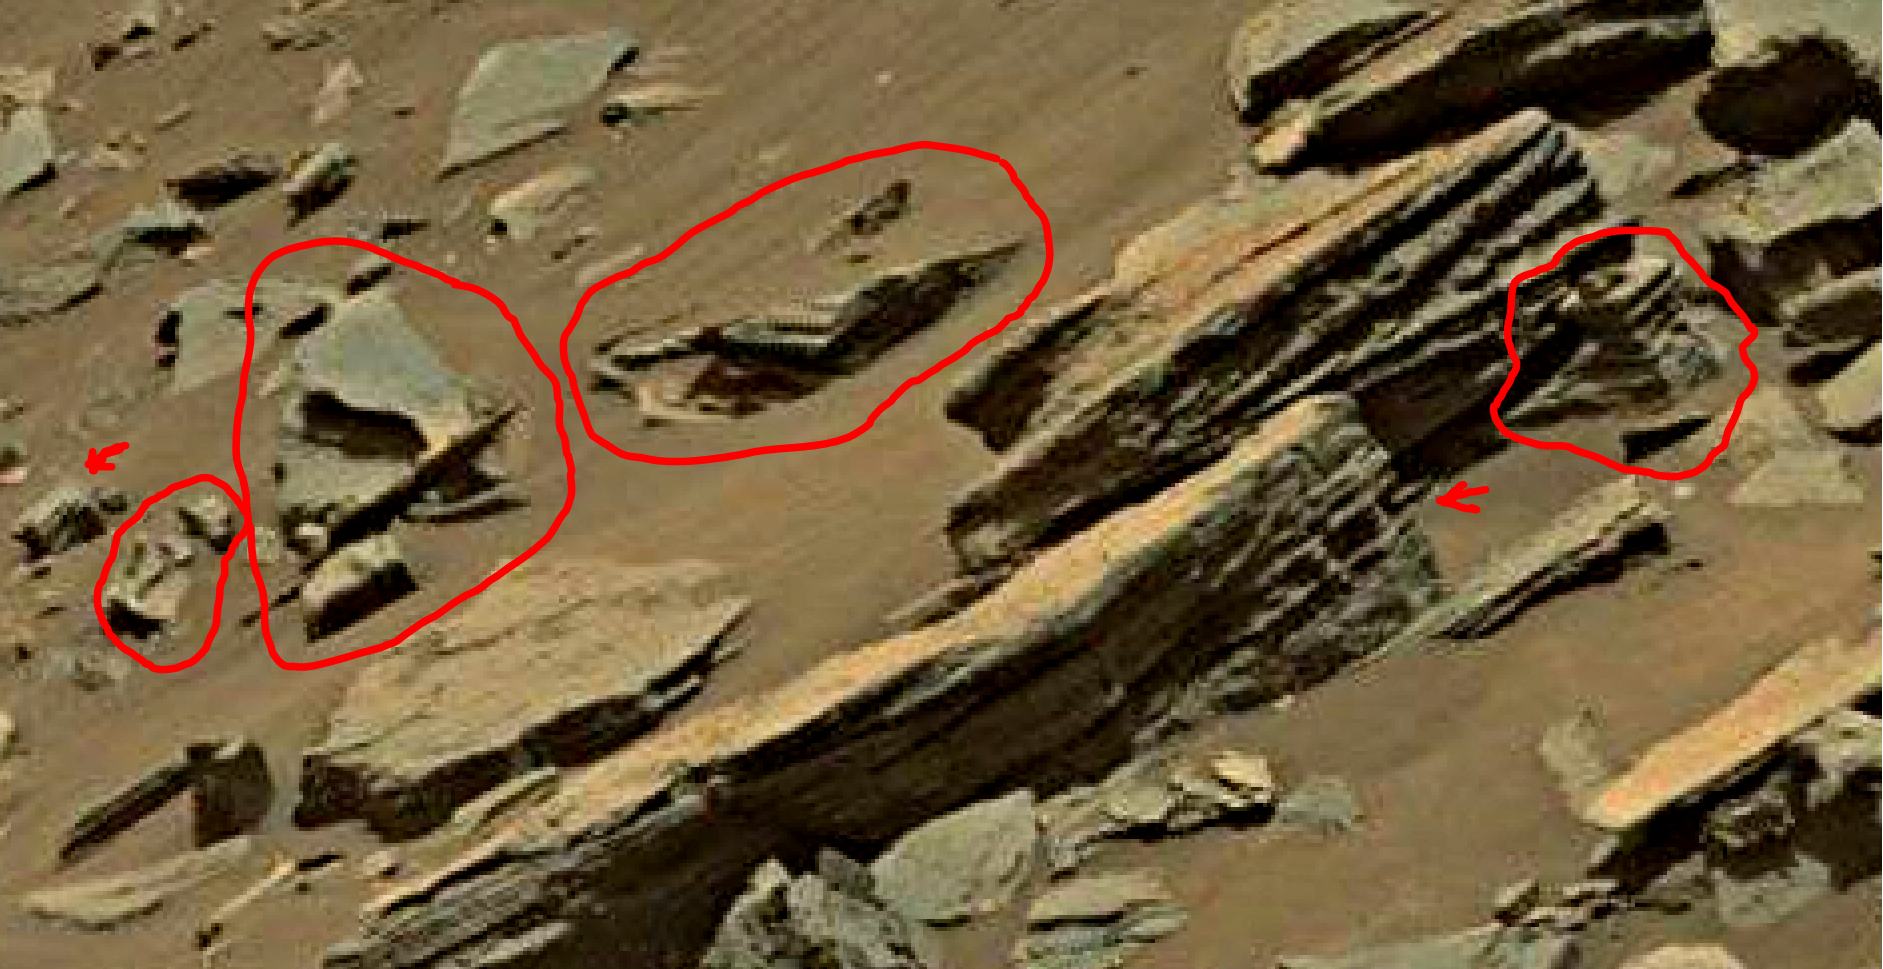 mars-sol-1455-anomaly-artifacts-1c-was-life-on-mars